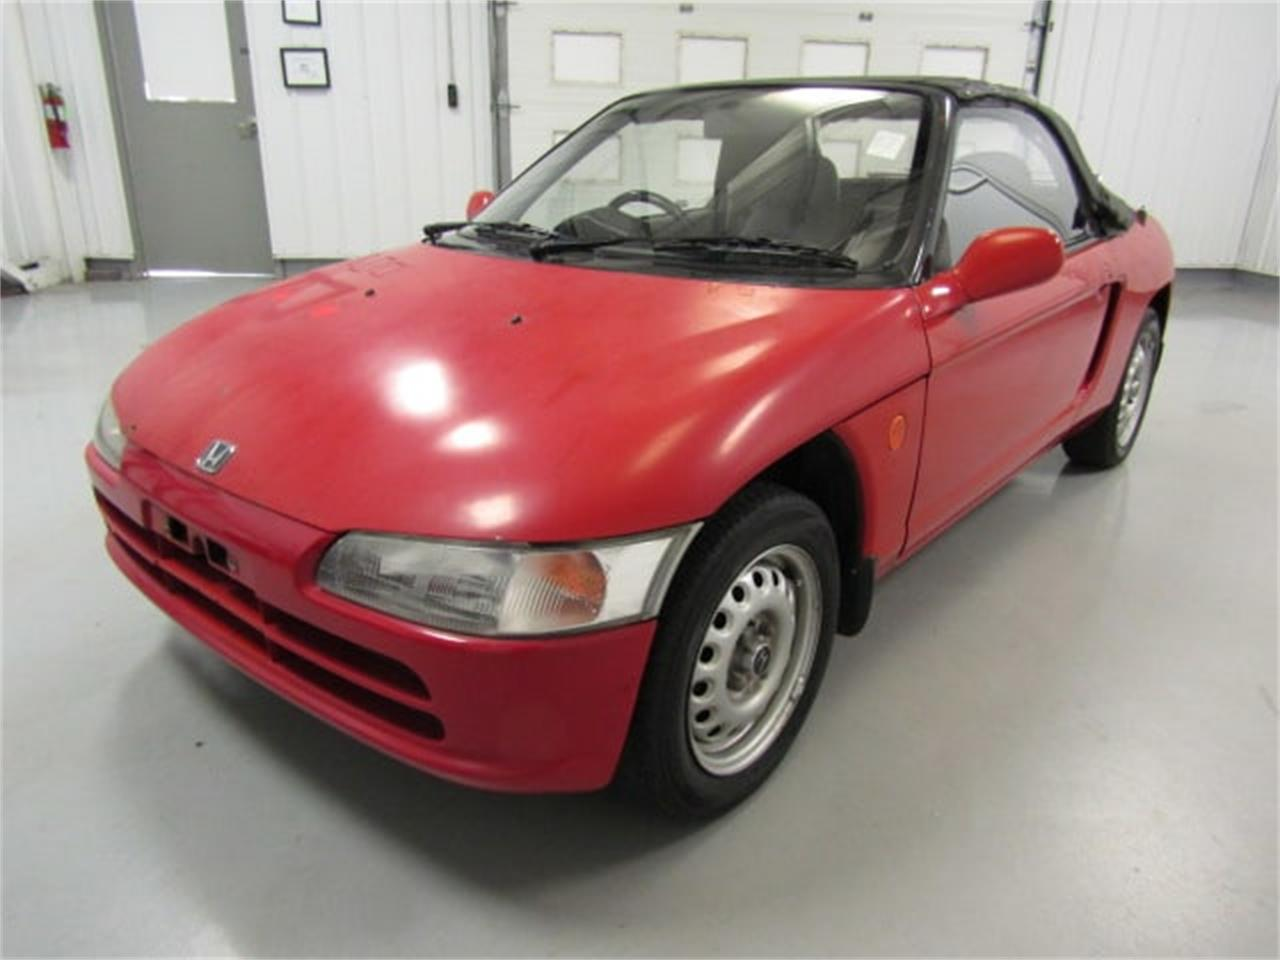 Large Picture of '91 Honda Beat - $4,999.00 Offered by Duncan Imports & Classic Cars - JL5X